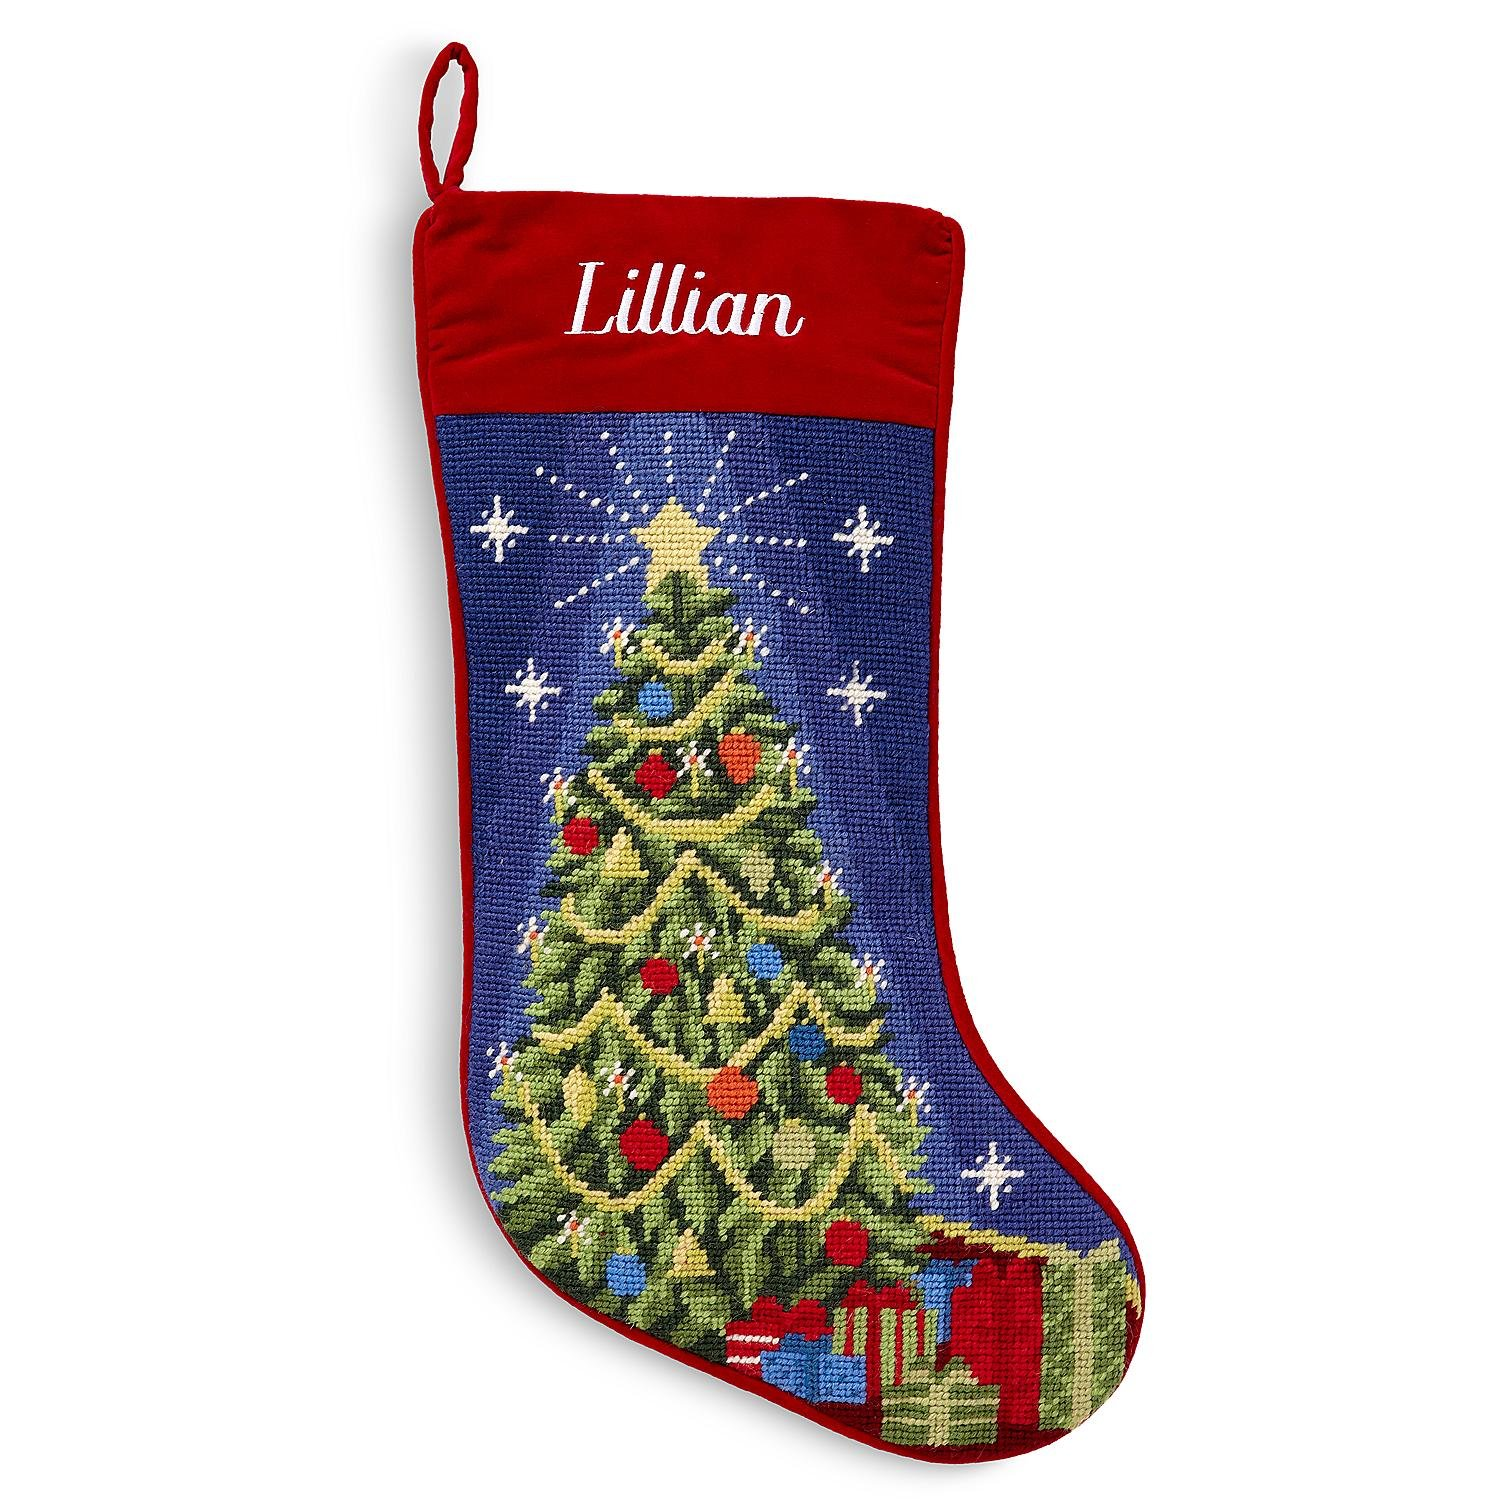 Personalized Needlepoint Christmas Stocking - 8 Designs - Custom Gifts - 17'' (Christmas Tree)